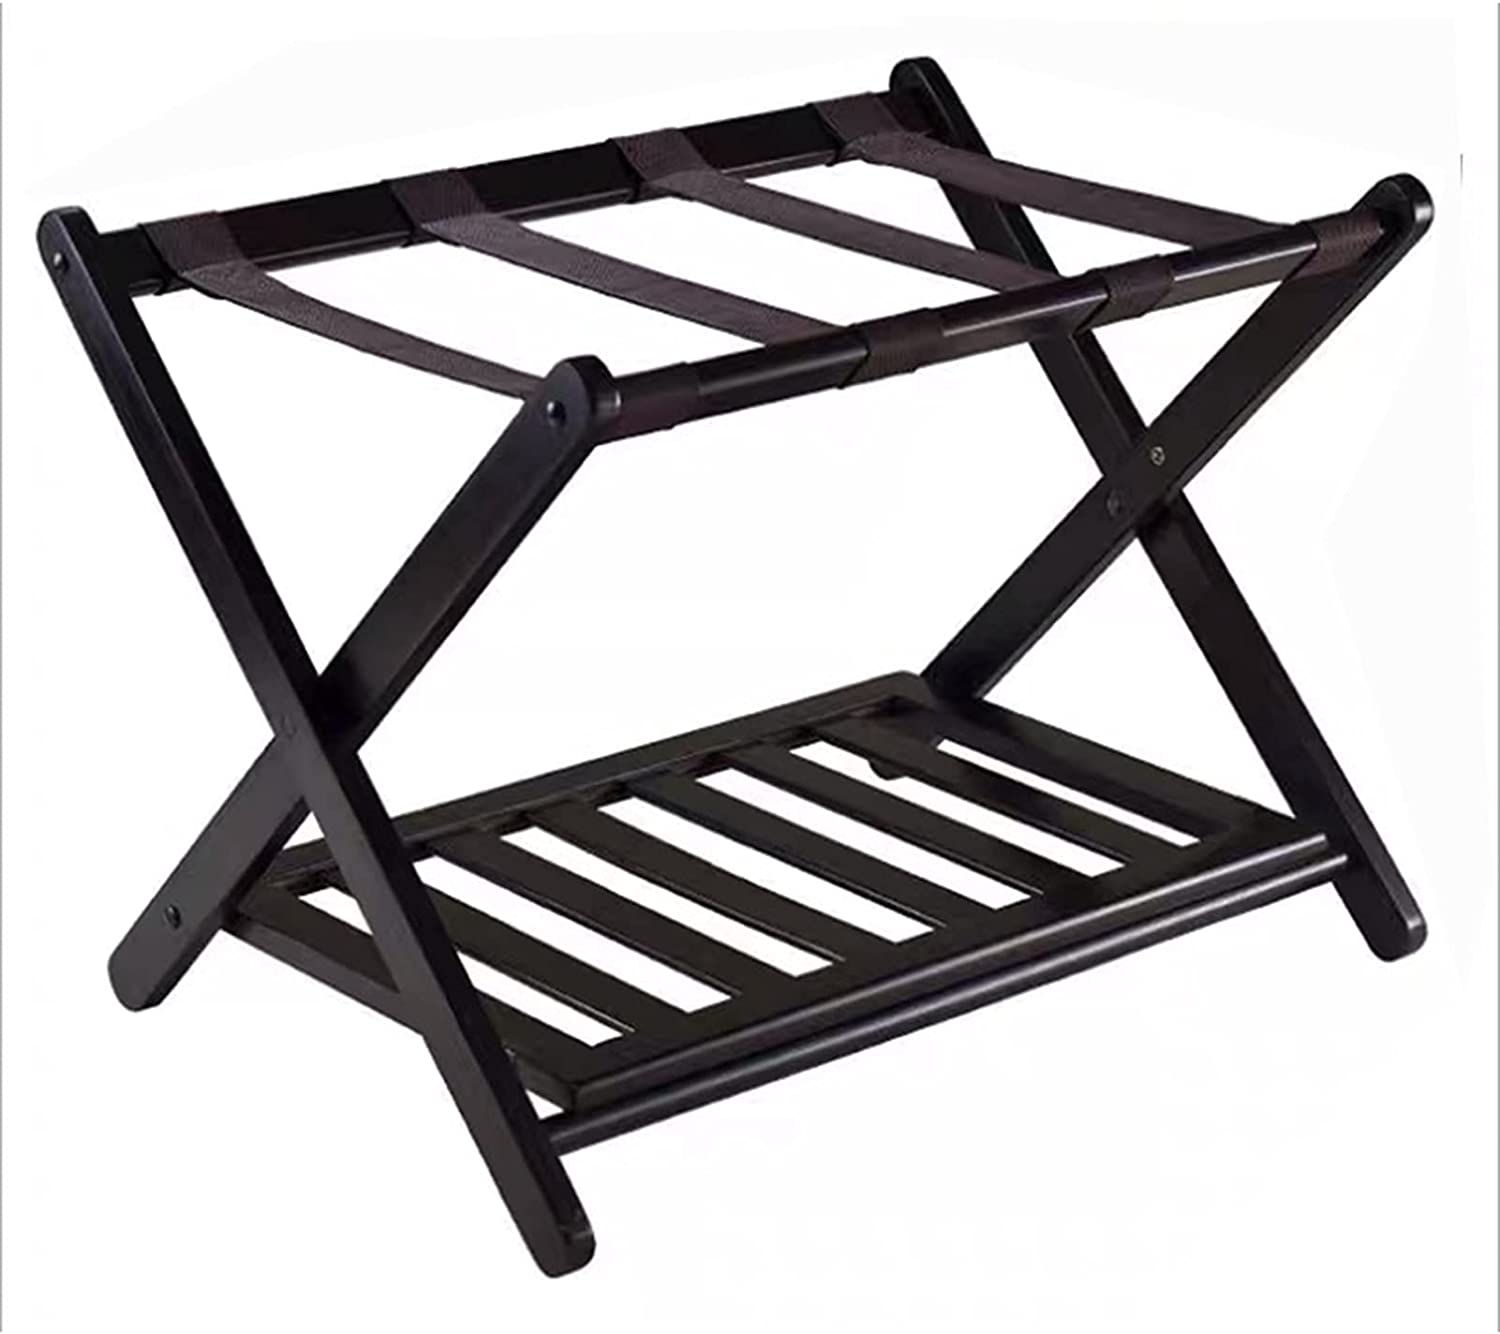 Fees free Vertical Luggage Rack Portable Solid Double-Layer Wood New products, world's highest quality popular! Storage